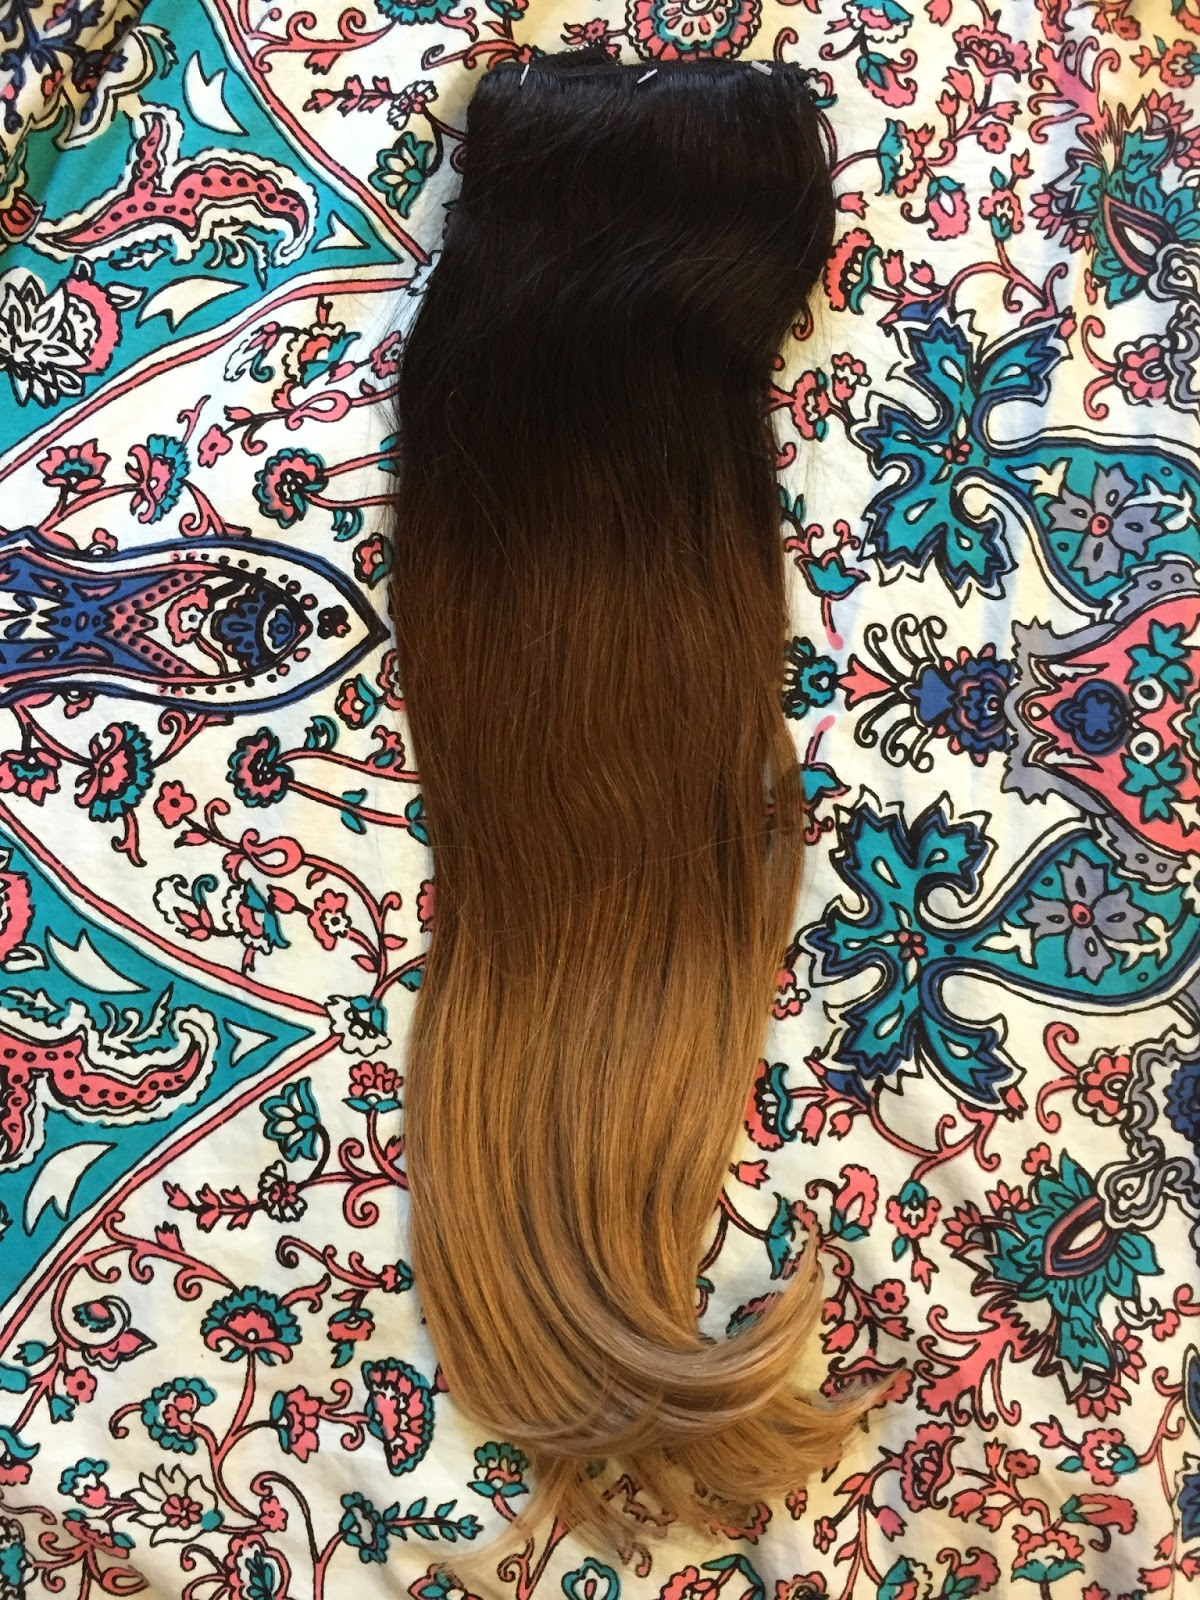 Makeup By Jasmine Dirty Looks Oh My Ombre Hair Extensions Review